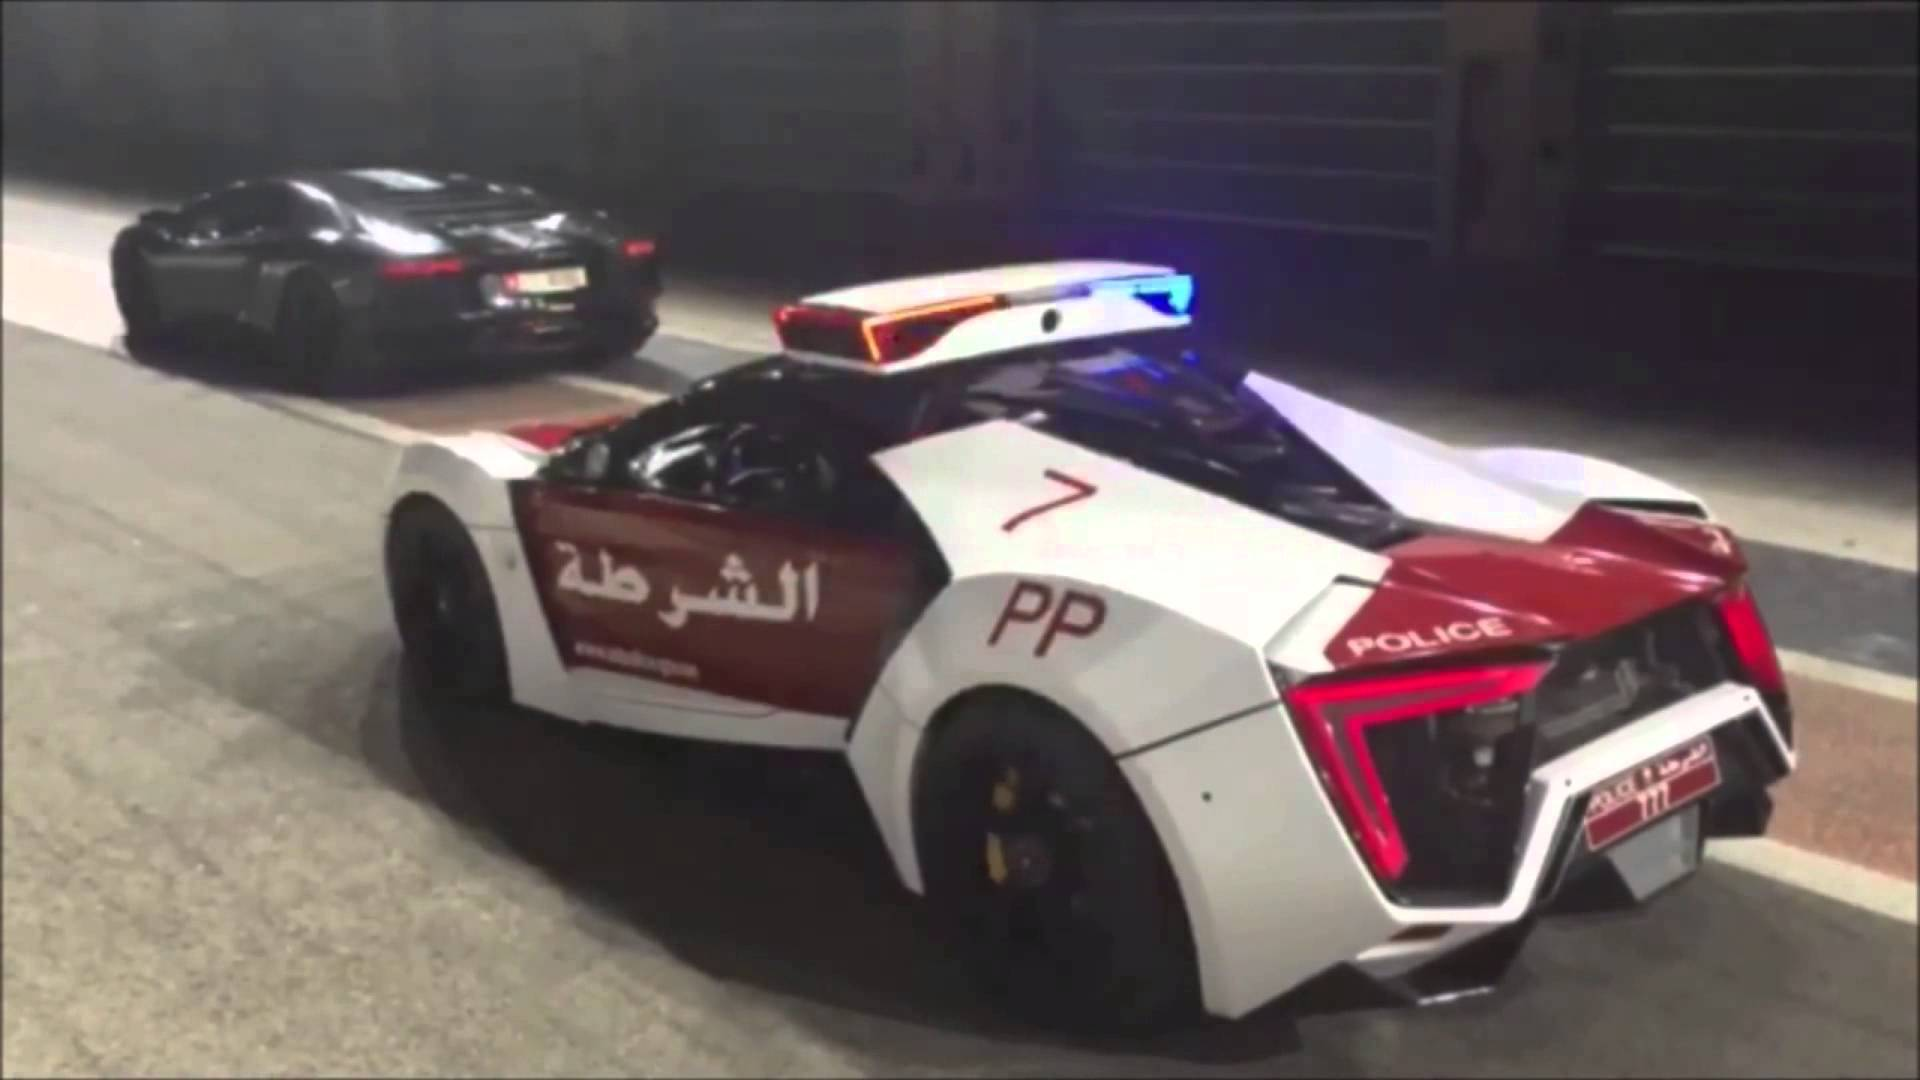 Lamborghini Aventador Challenges A Lykan Hypersport Police Car On The Streets Of Abu Dhabi